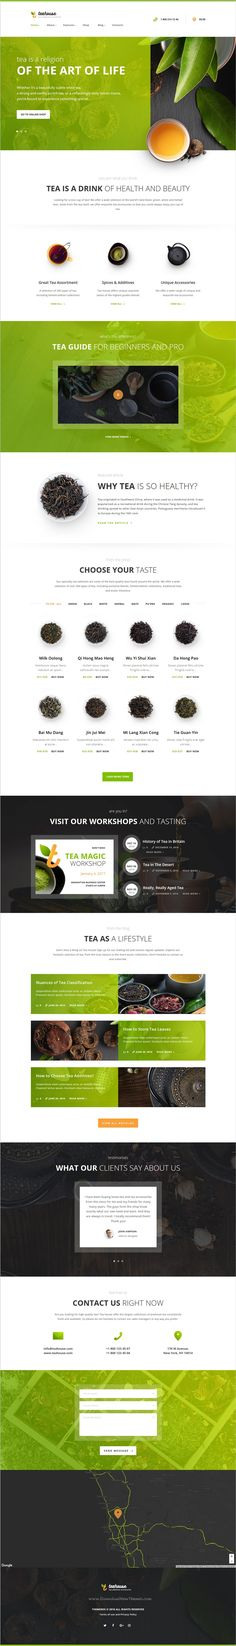 Tea house is a wonderful responsive #WordPress theme for #webdev your #tea store, #cafe, bar, restaurant, bakery websites download now➩ https://themeforest.net/item/tea-house-tea-store-and-cafe/19352266?ref=Datasata